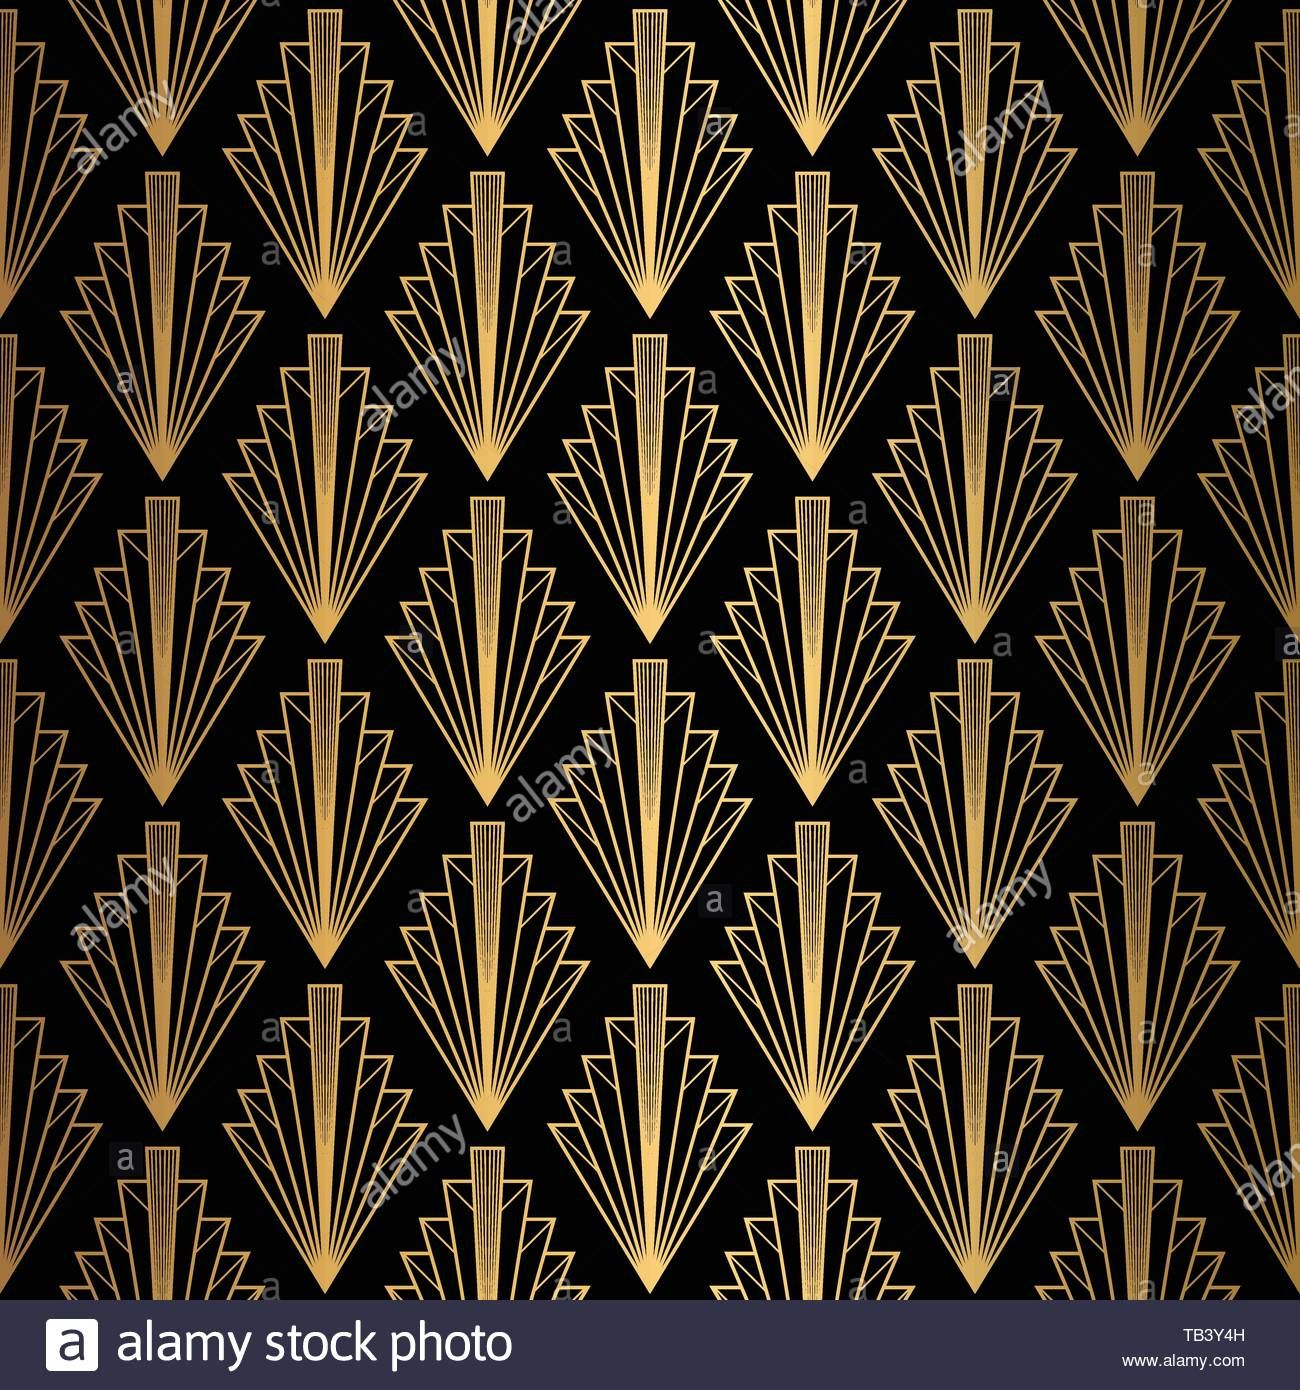 Download This Stock Vector Art Deco Pattern Seamless Black And Gold Background Tb3y4h From Alamy Gold Art Deco Pattern Art Deco Pattern Art Deco Wallpaper